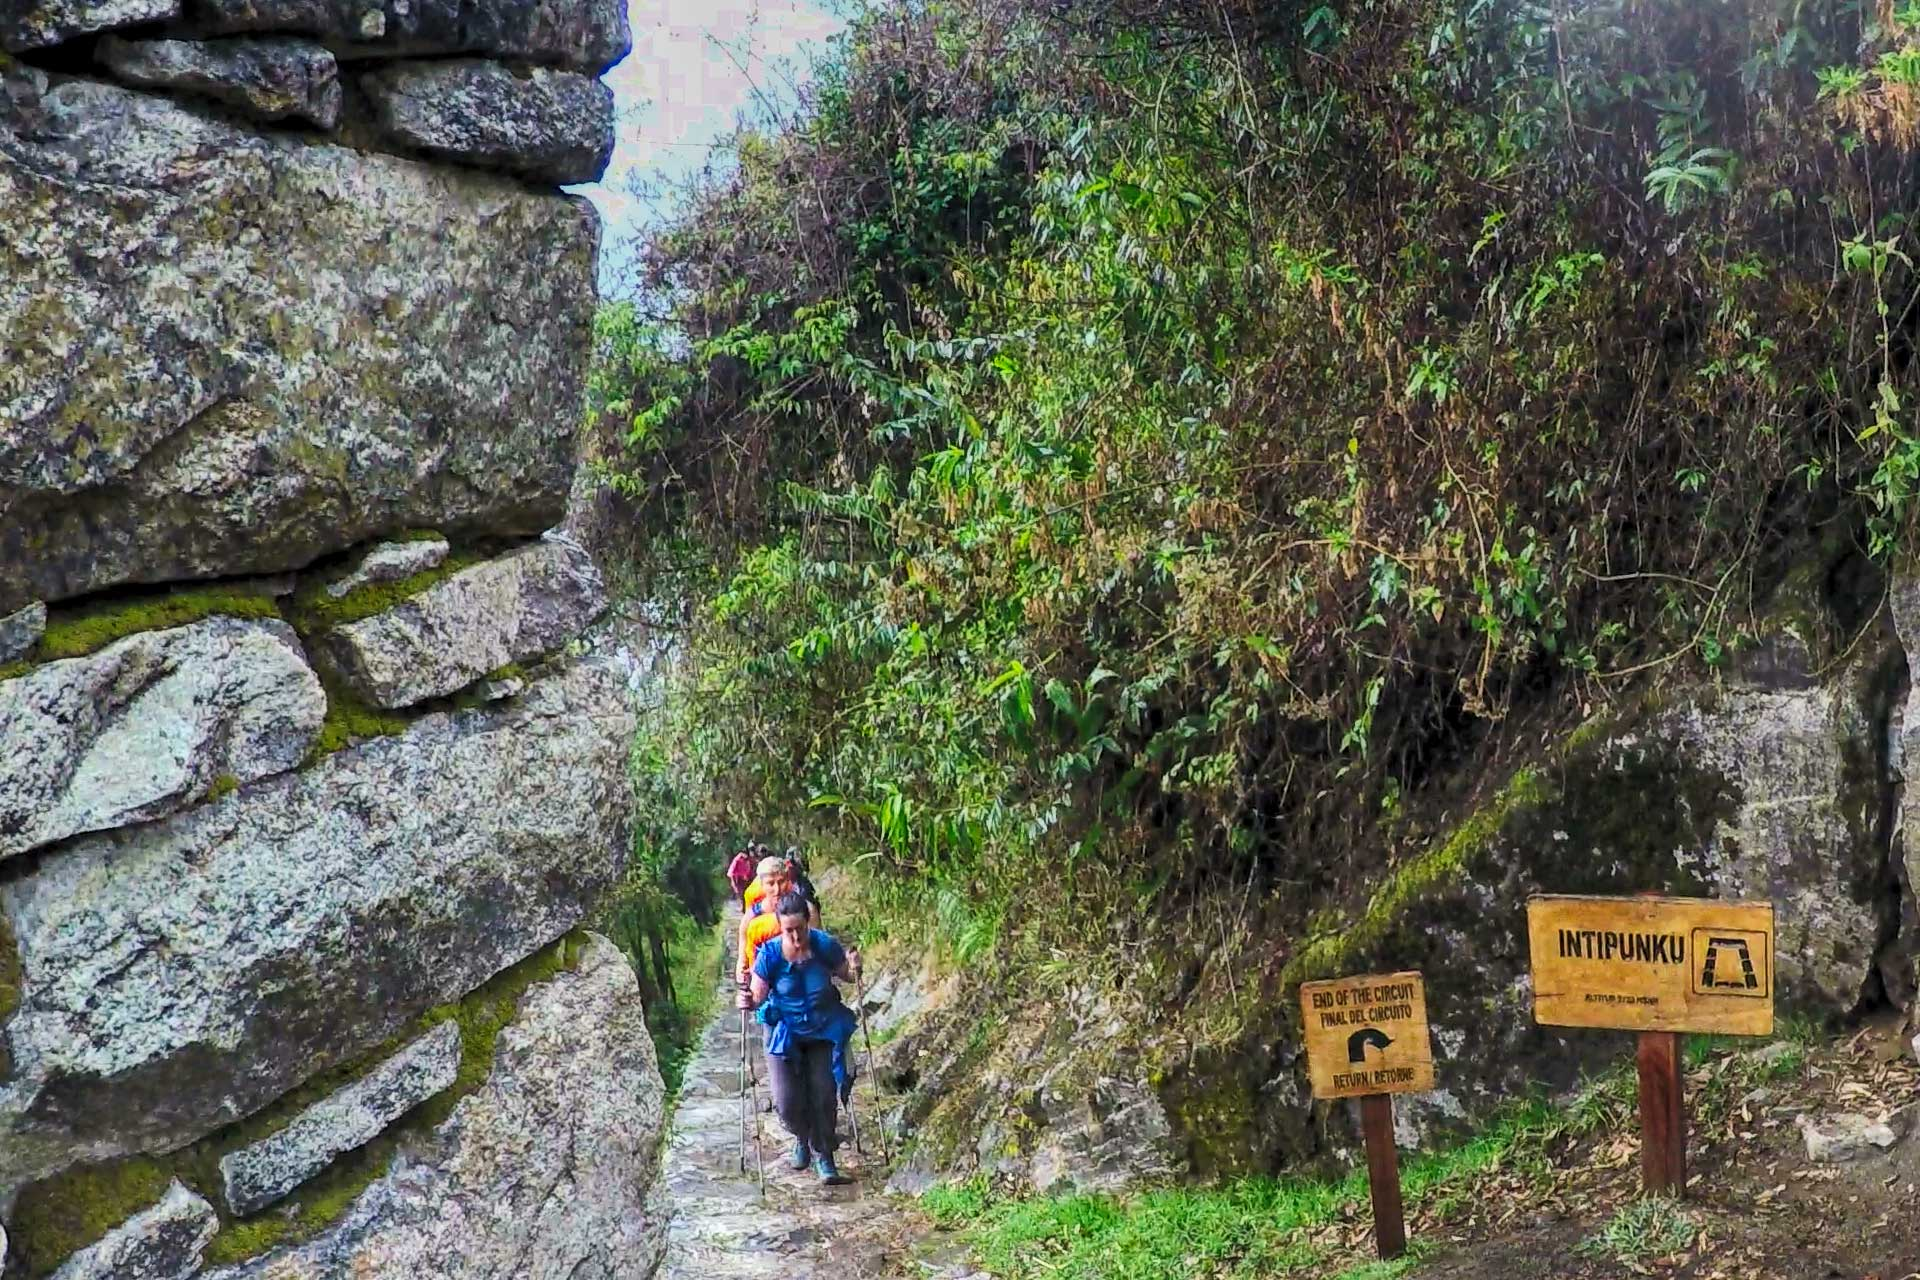 The Best Way to Machu Picchu: Inca Trail, Inka Jungle Tour, Salkantay Trek or Train?